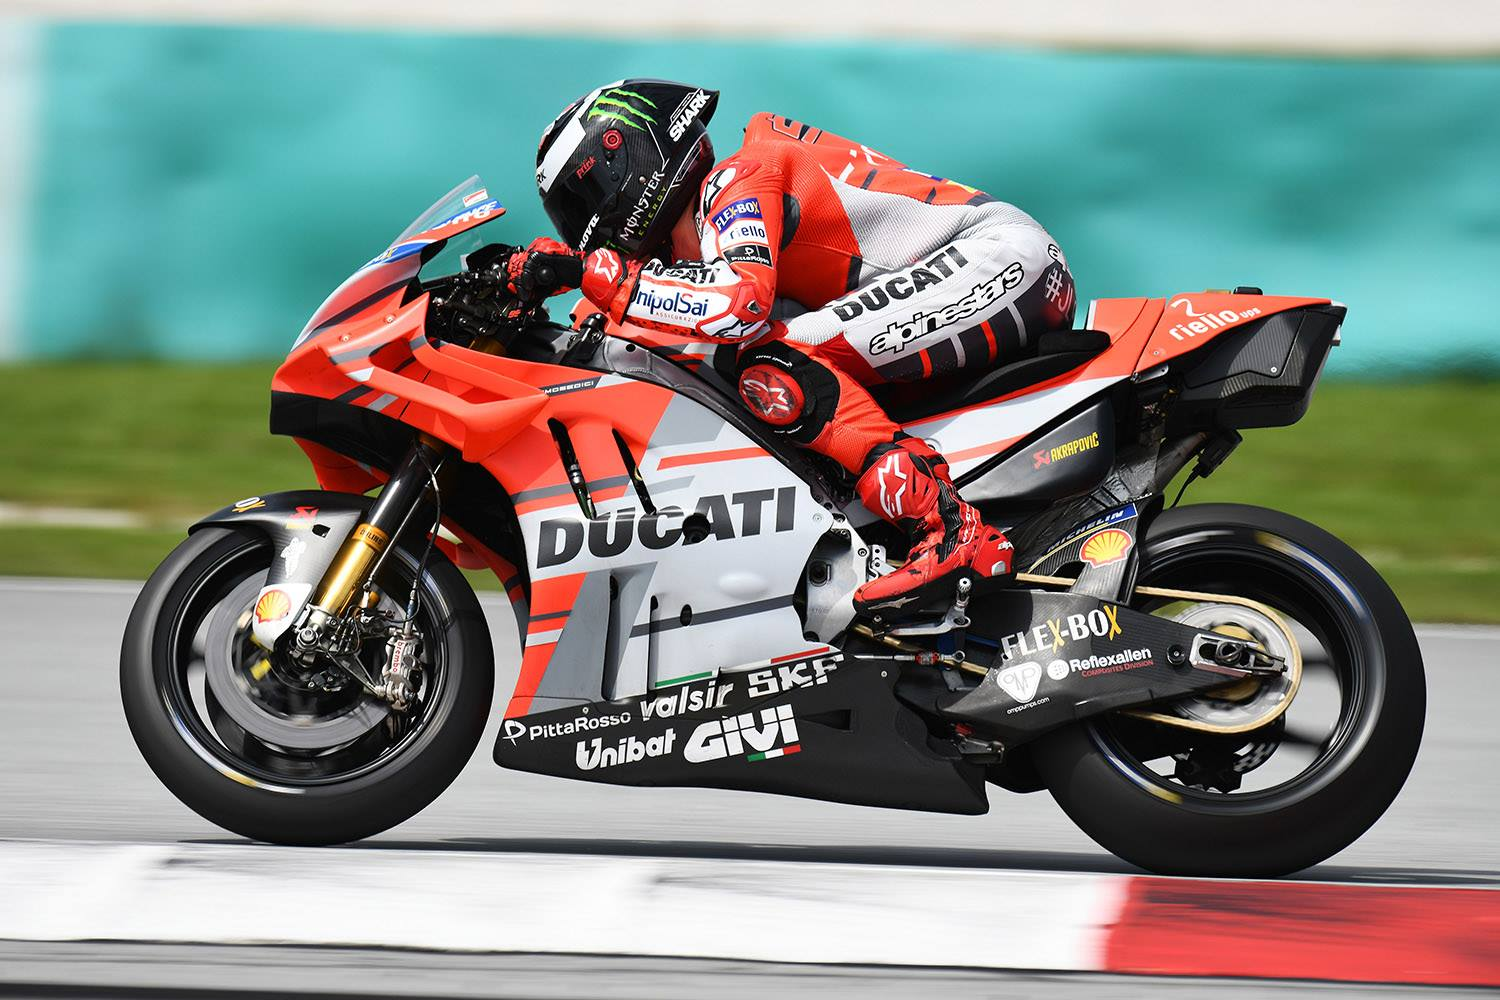 In support of Dovi and Lorenzo for this weekends GP, any bike ordered between now and 4pm Sunday 18th from either site gets 2 race day tickets for Assen GP or a BSB round of your choice! See instore for info. #Motogp #Forzaducati